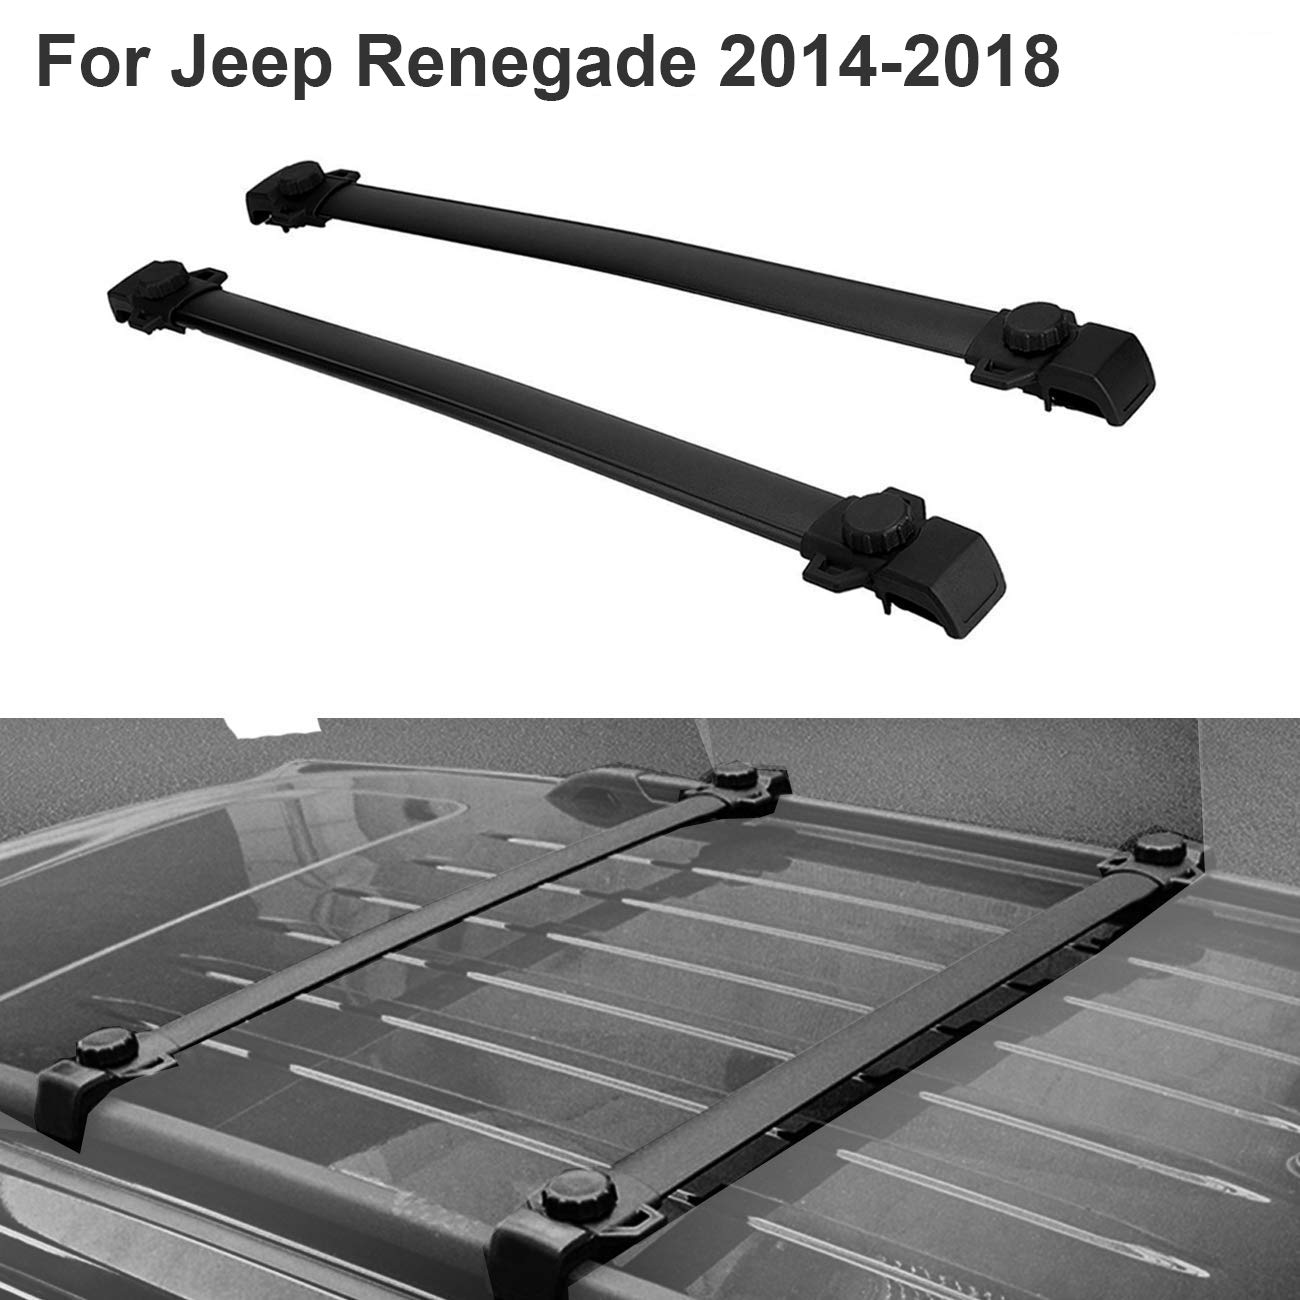 ALAVENTE Roof Rack Cross Bars for Jeep Renegade 2014-2018 with Side Rails (Pair, Black)